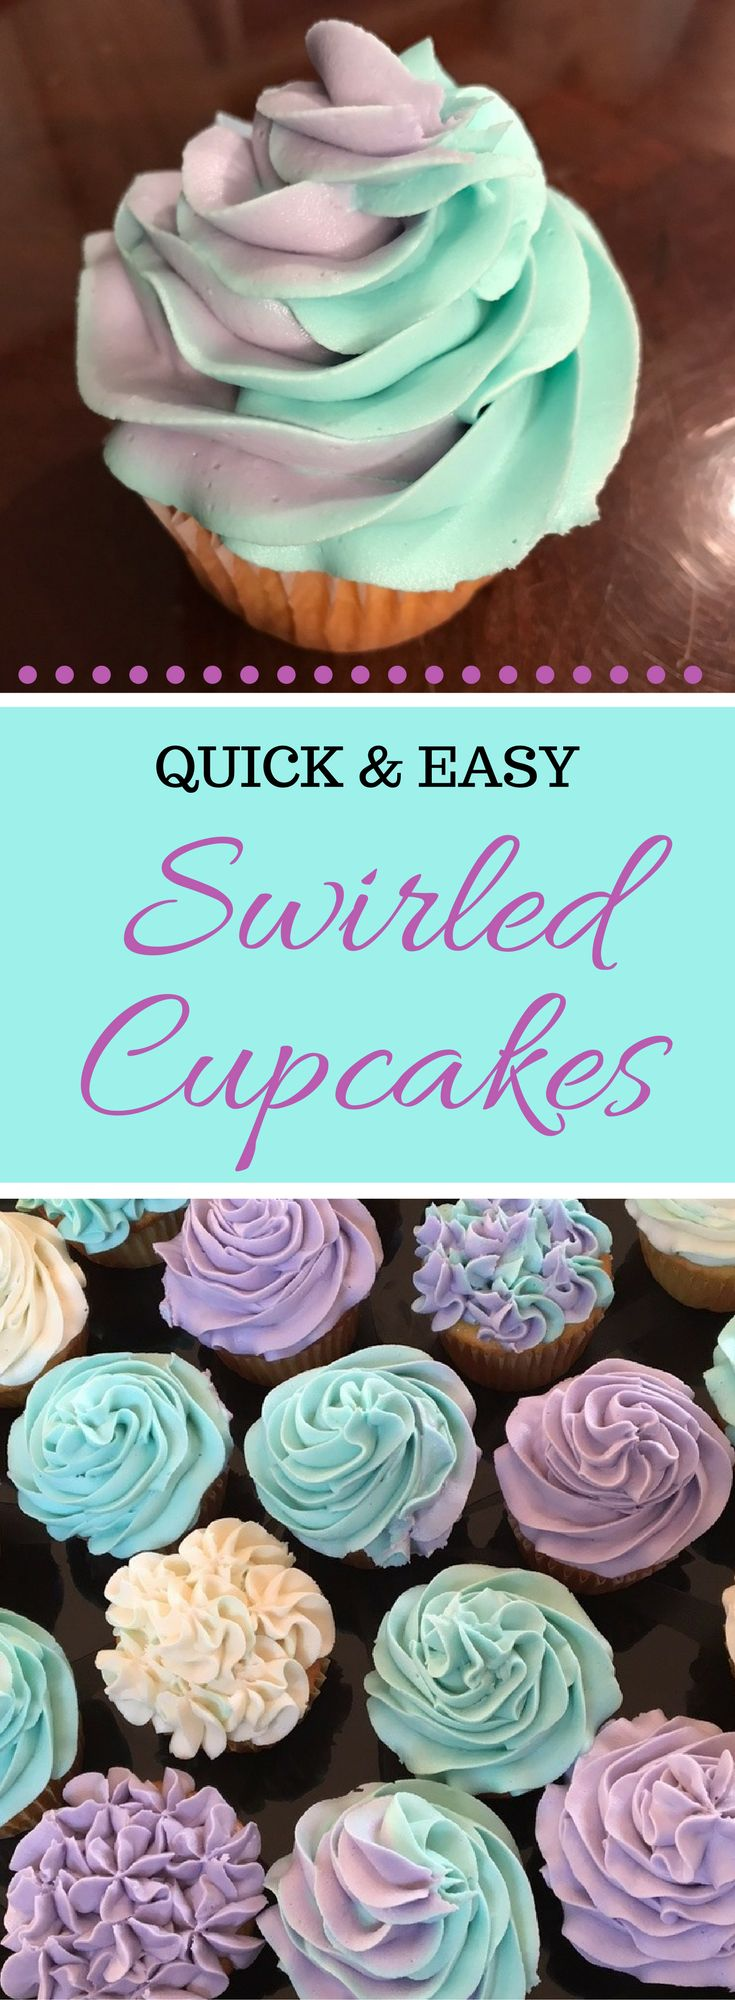 Quick and easy swirled iced cupcakes with homemade Cupcake decorating ideas